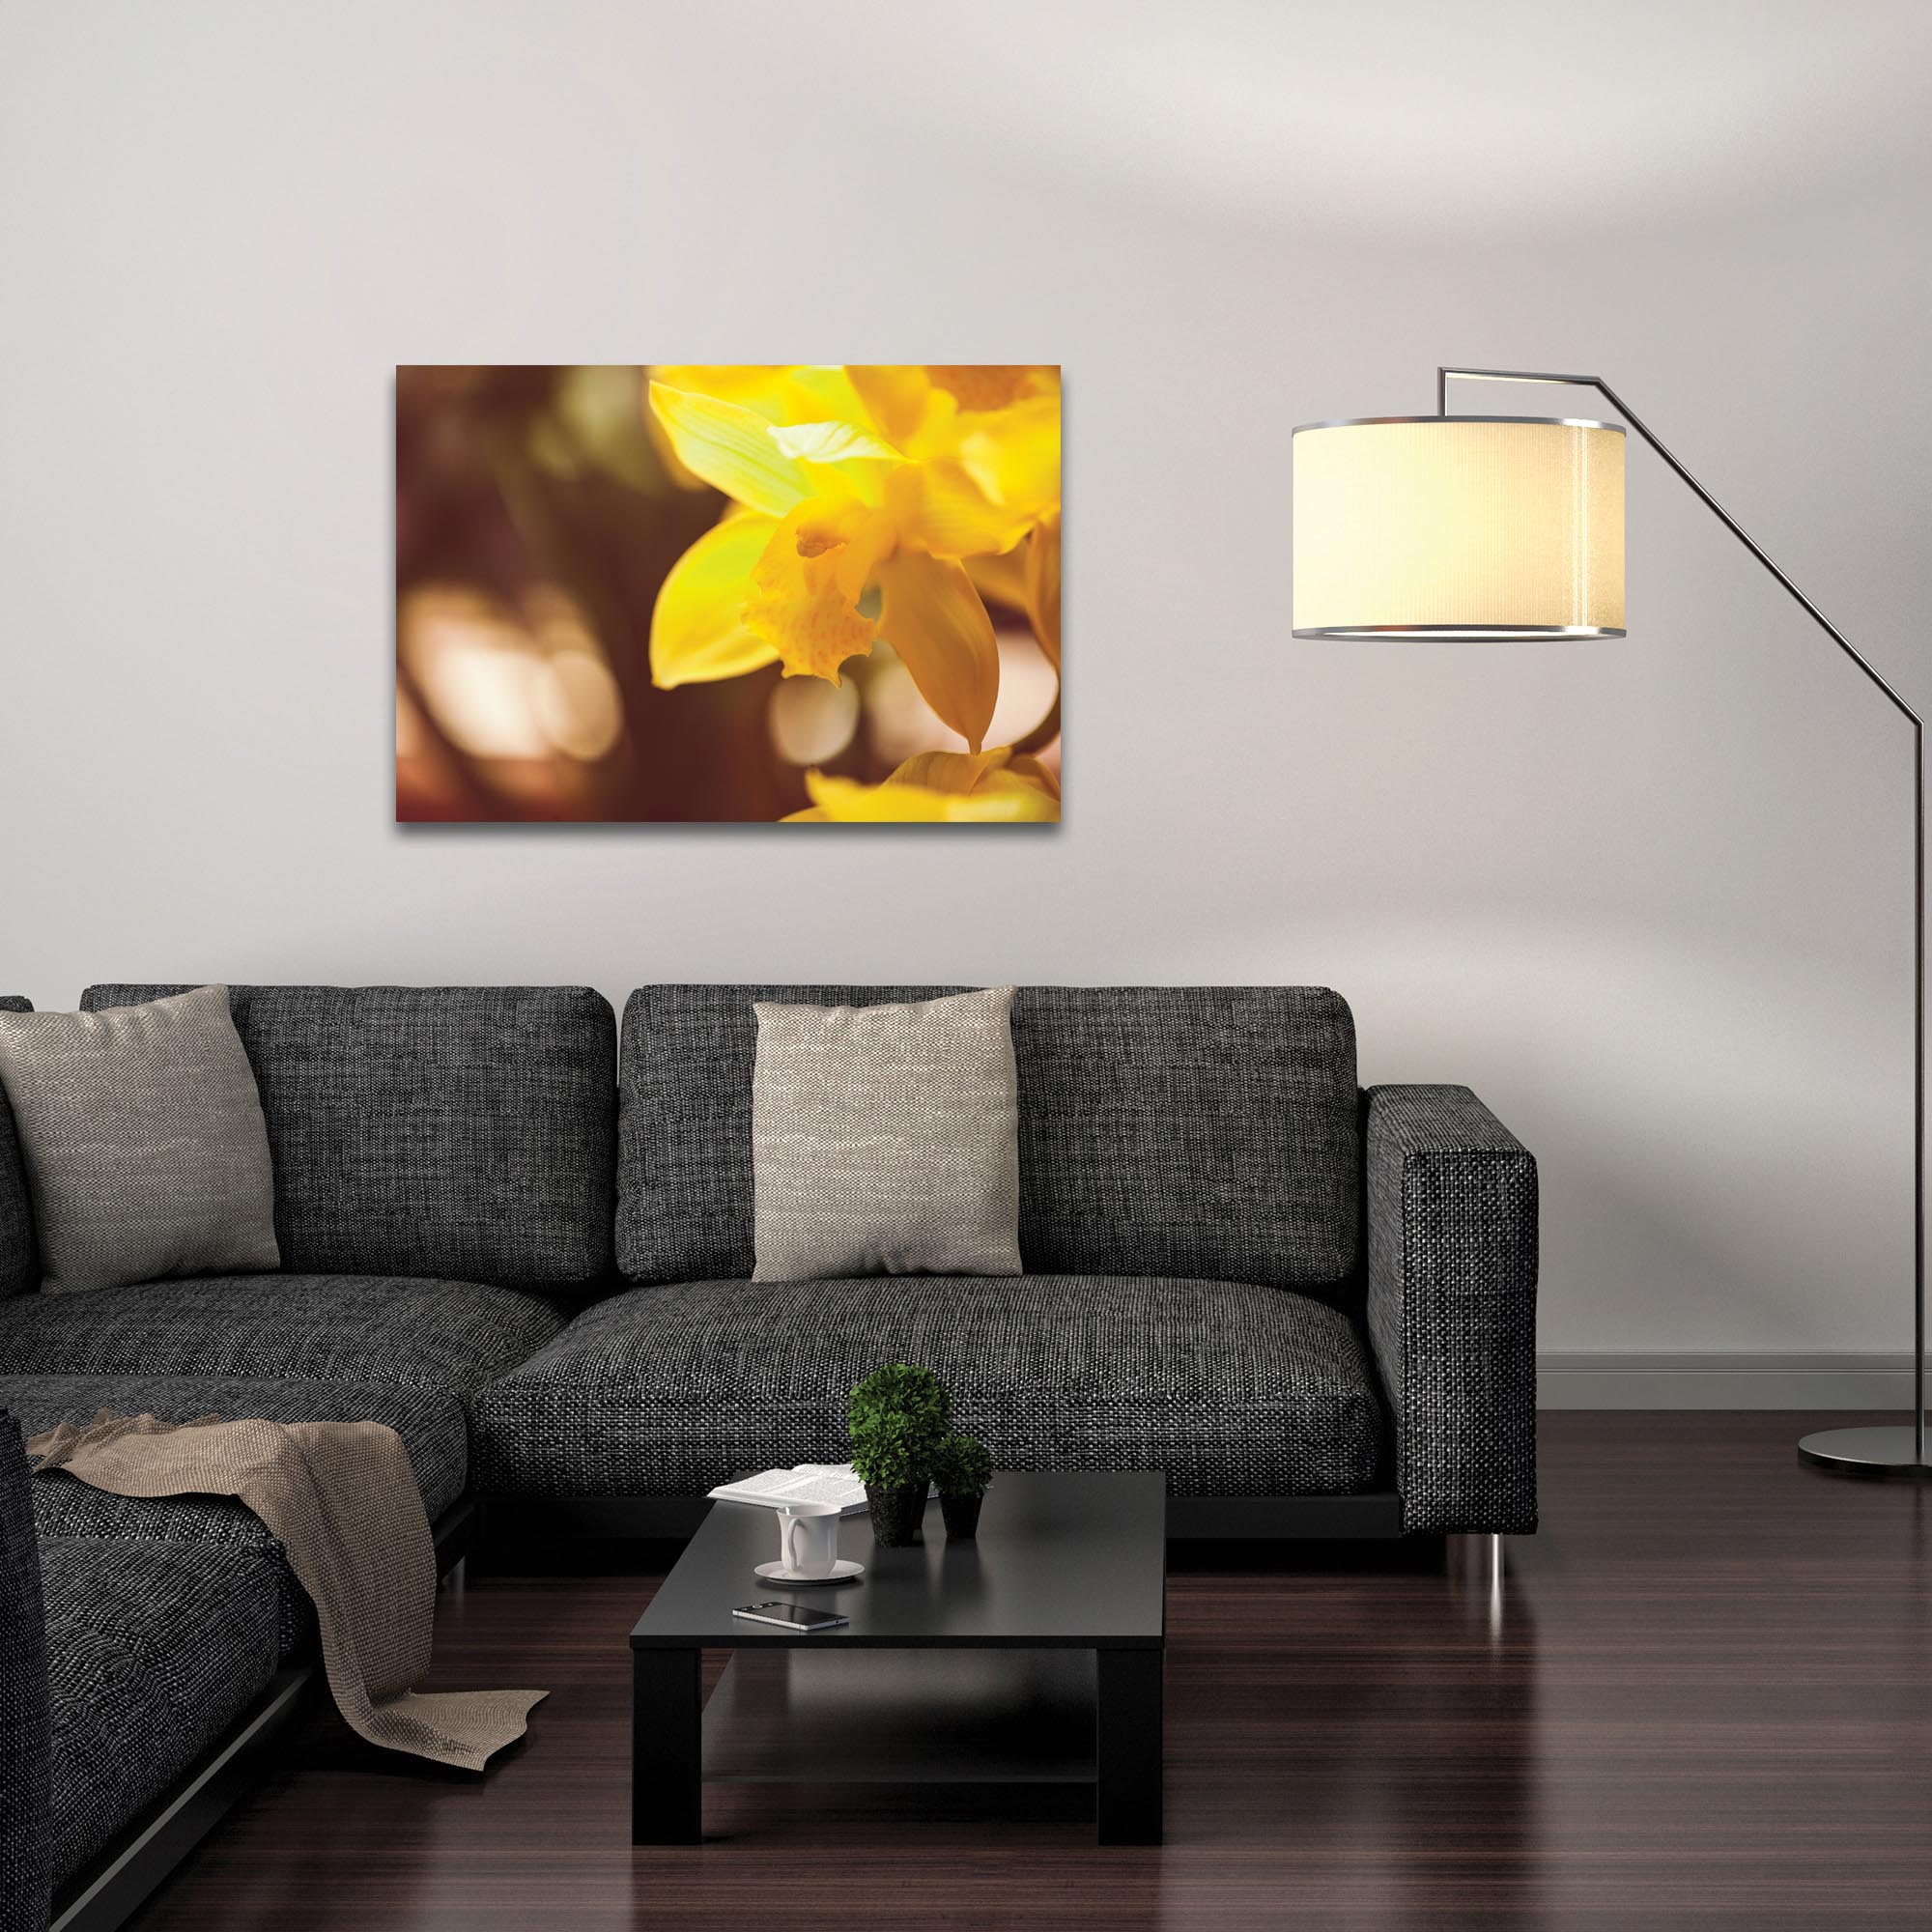 Nature Photography 'Golden Bloom' - Flower Blossom Art on Metal or Plexiglass - Lifestyle View